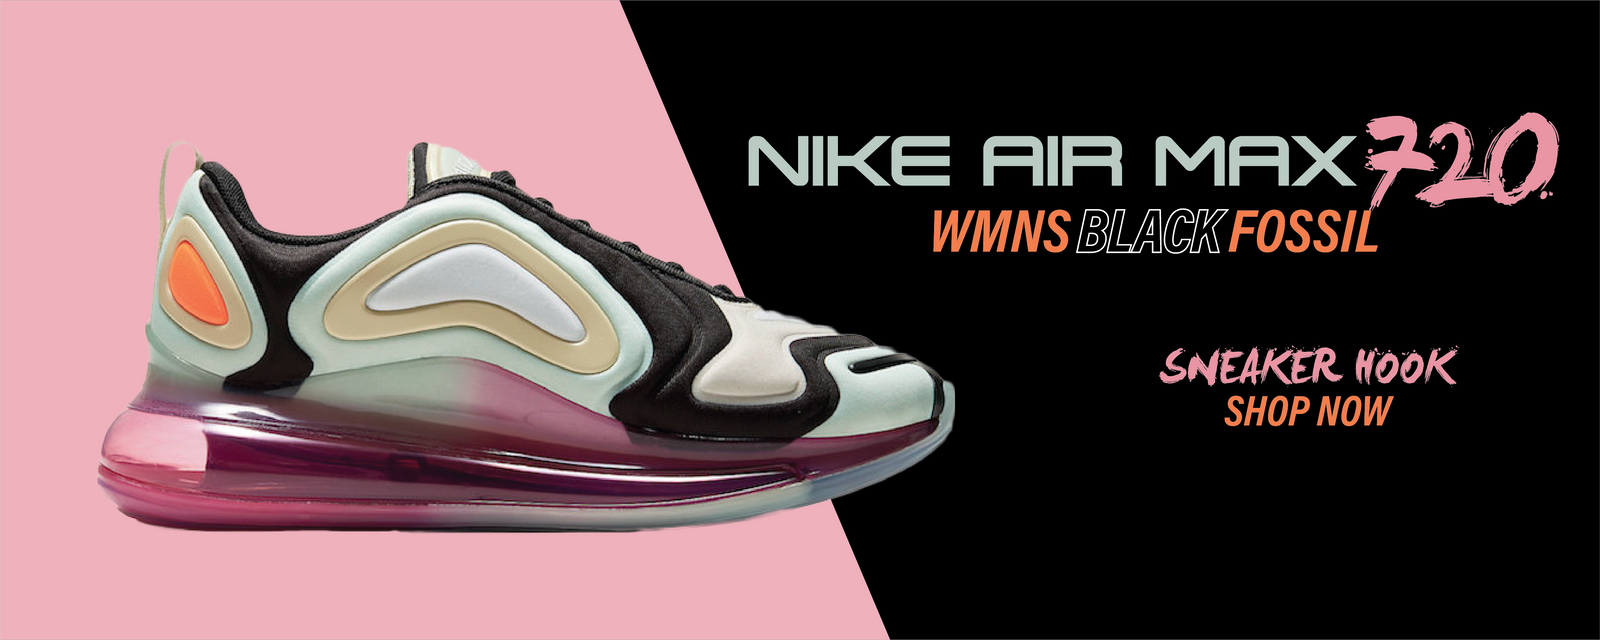 Air Max 720 WMNS Black Fossil Clothing to match Sneakers | Clothing to match Nike Air Max 720 WMNS Black Fossil Shoes